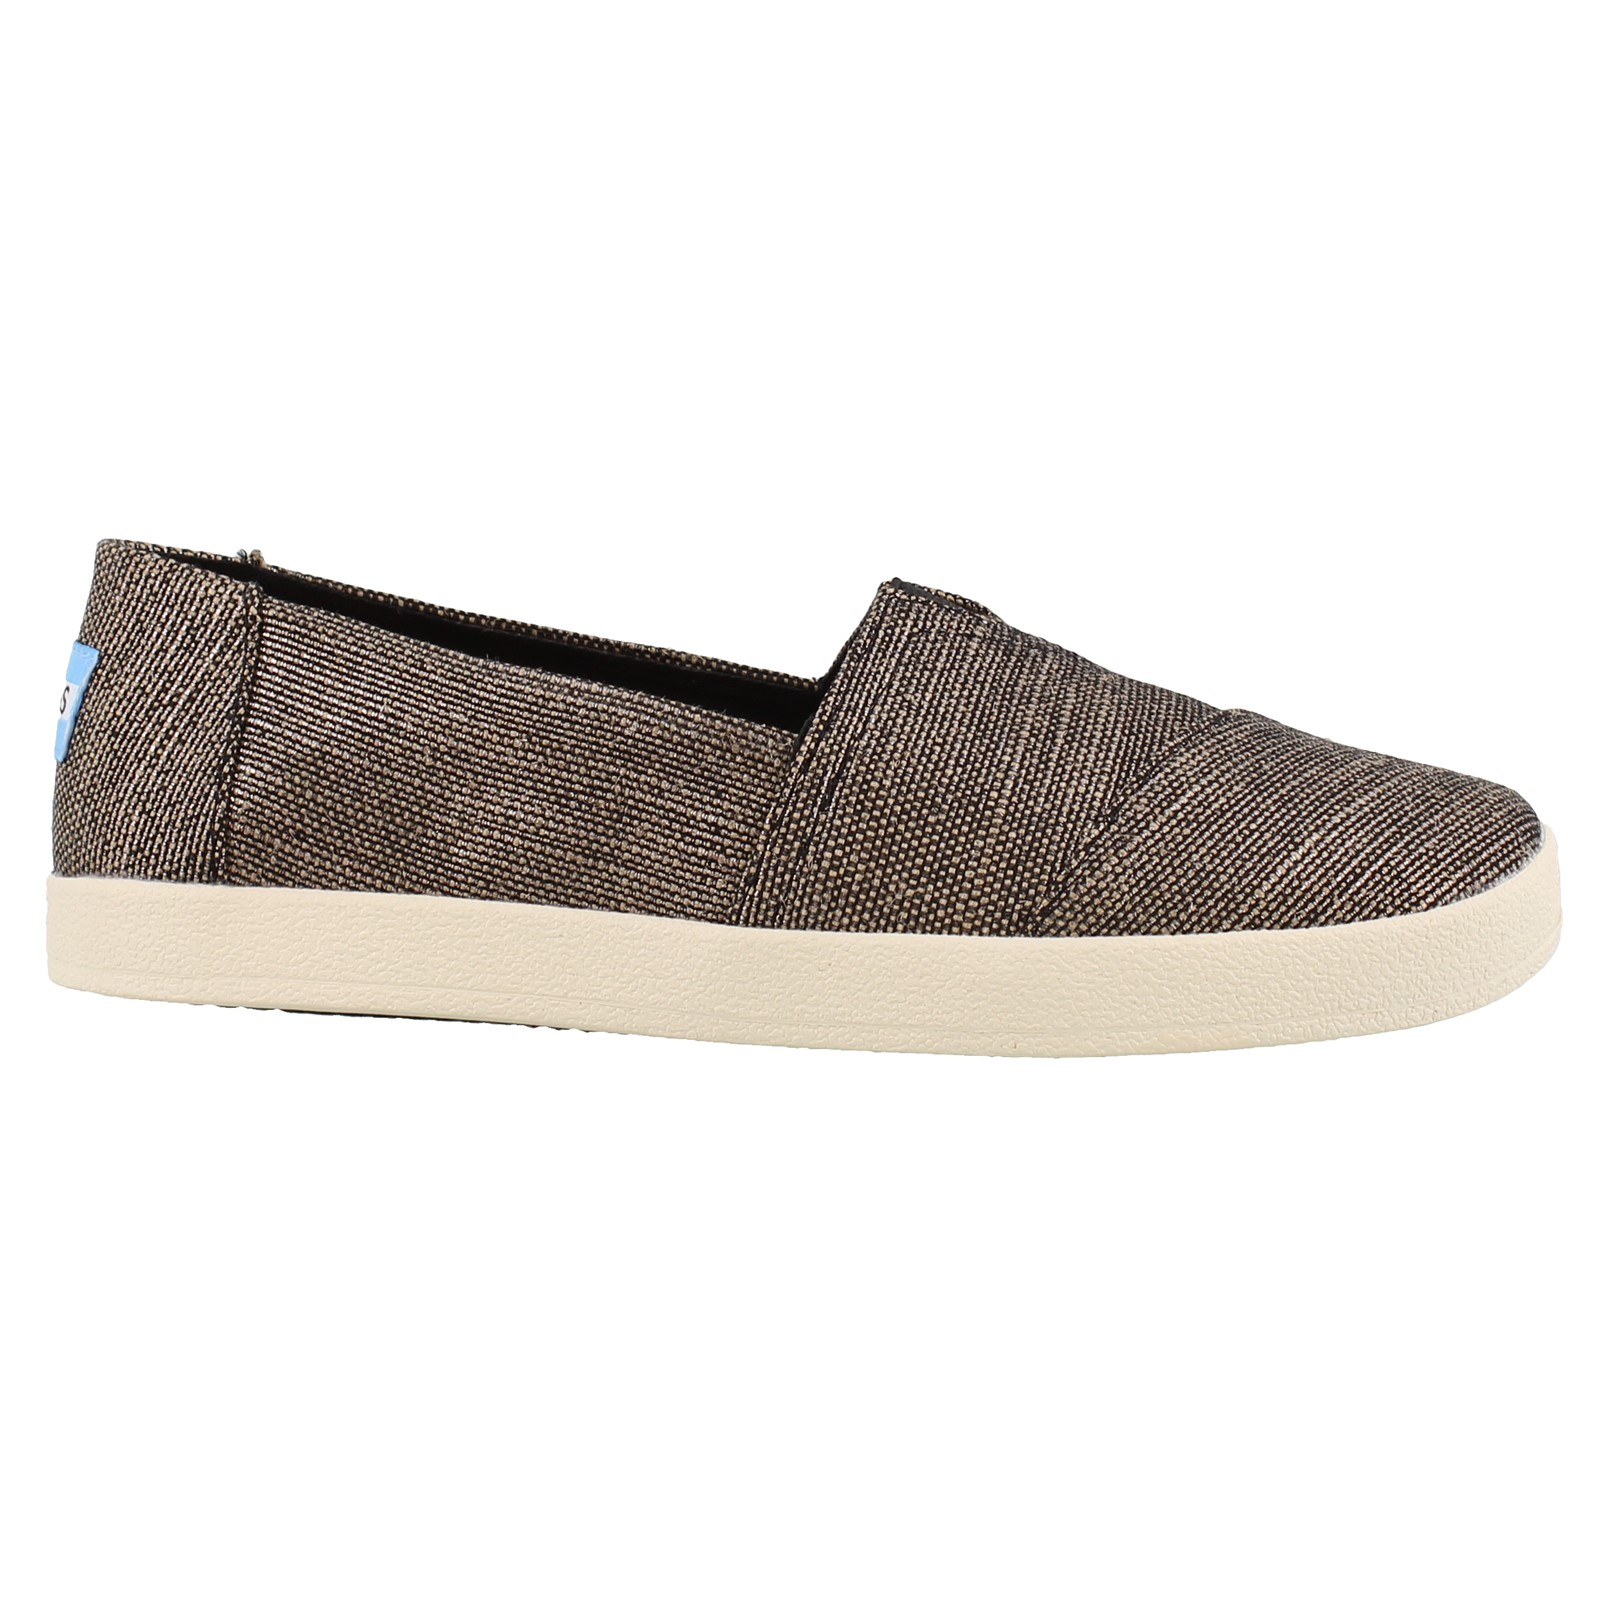 Women's Toms, Avalon Slip on Shoes